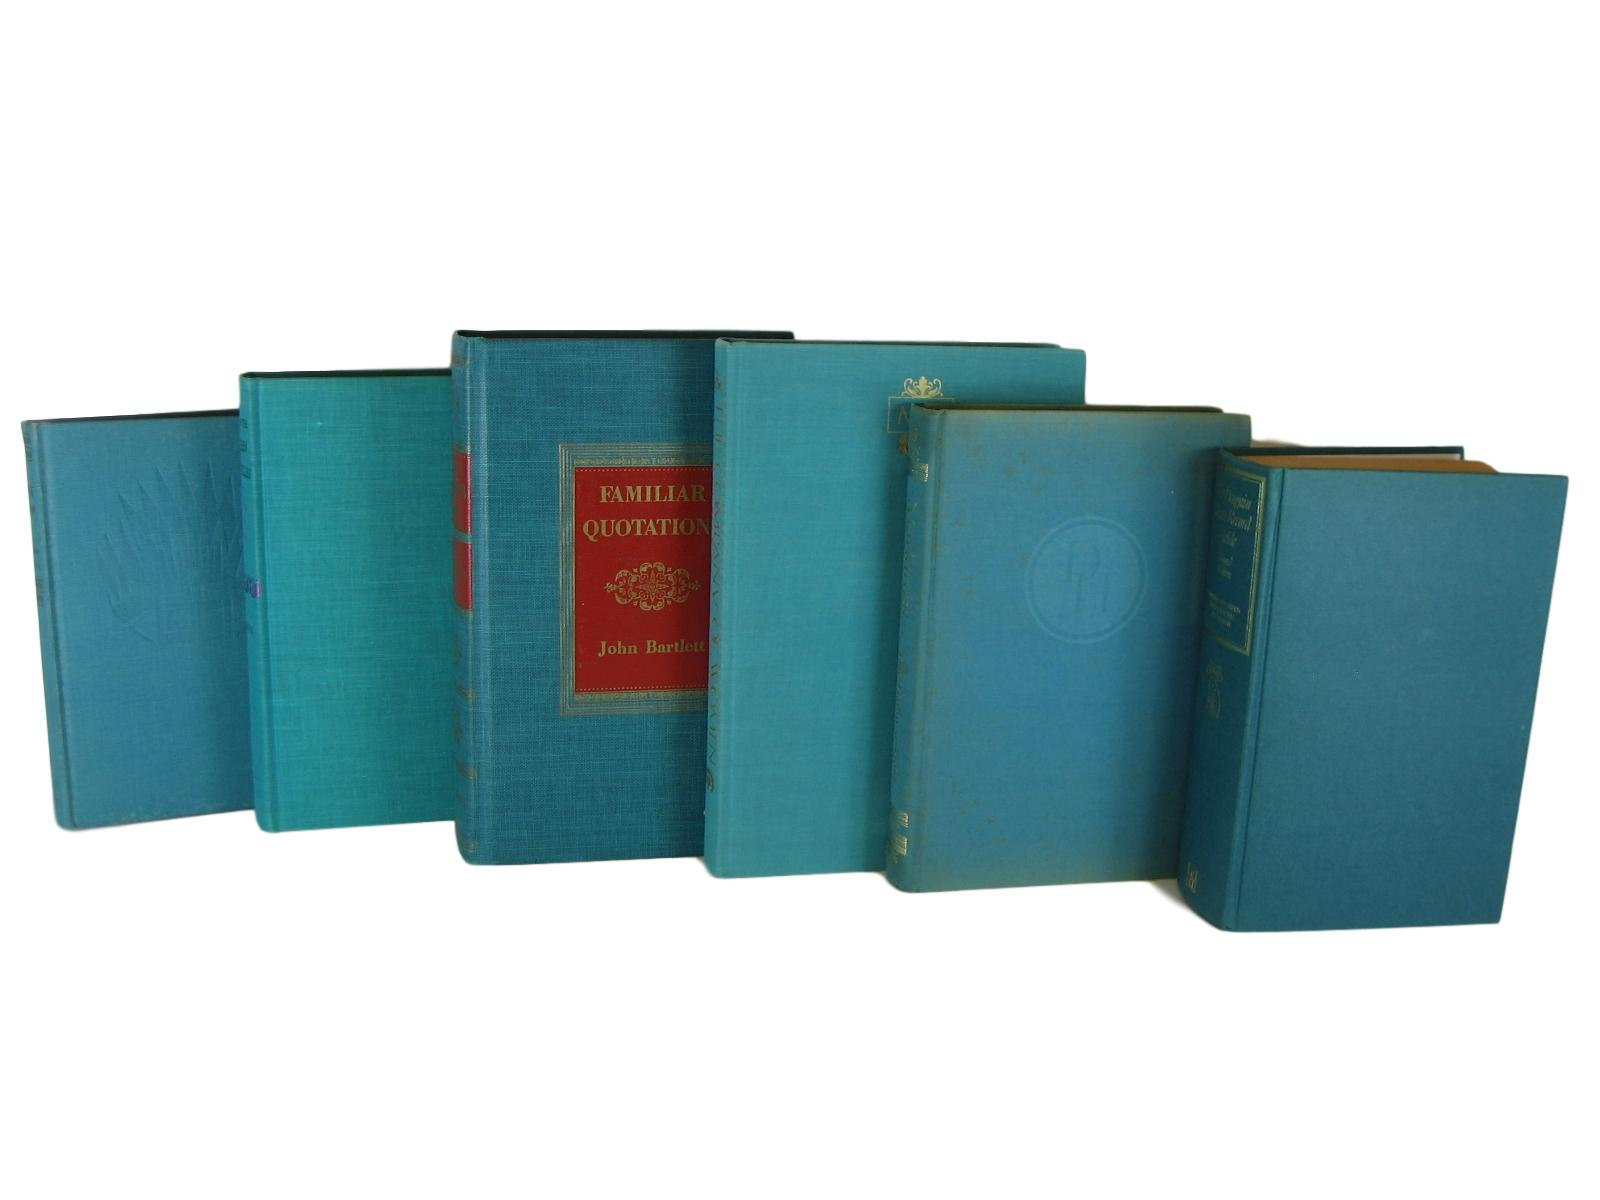 Green-Blue Vintage Books for Bookshelf Decor, S/6, [decorative_books], Decades of Vintage